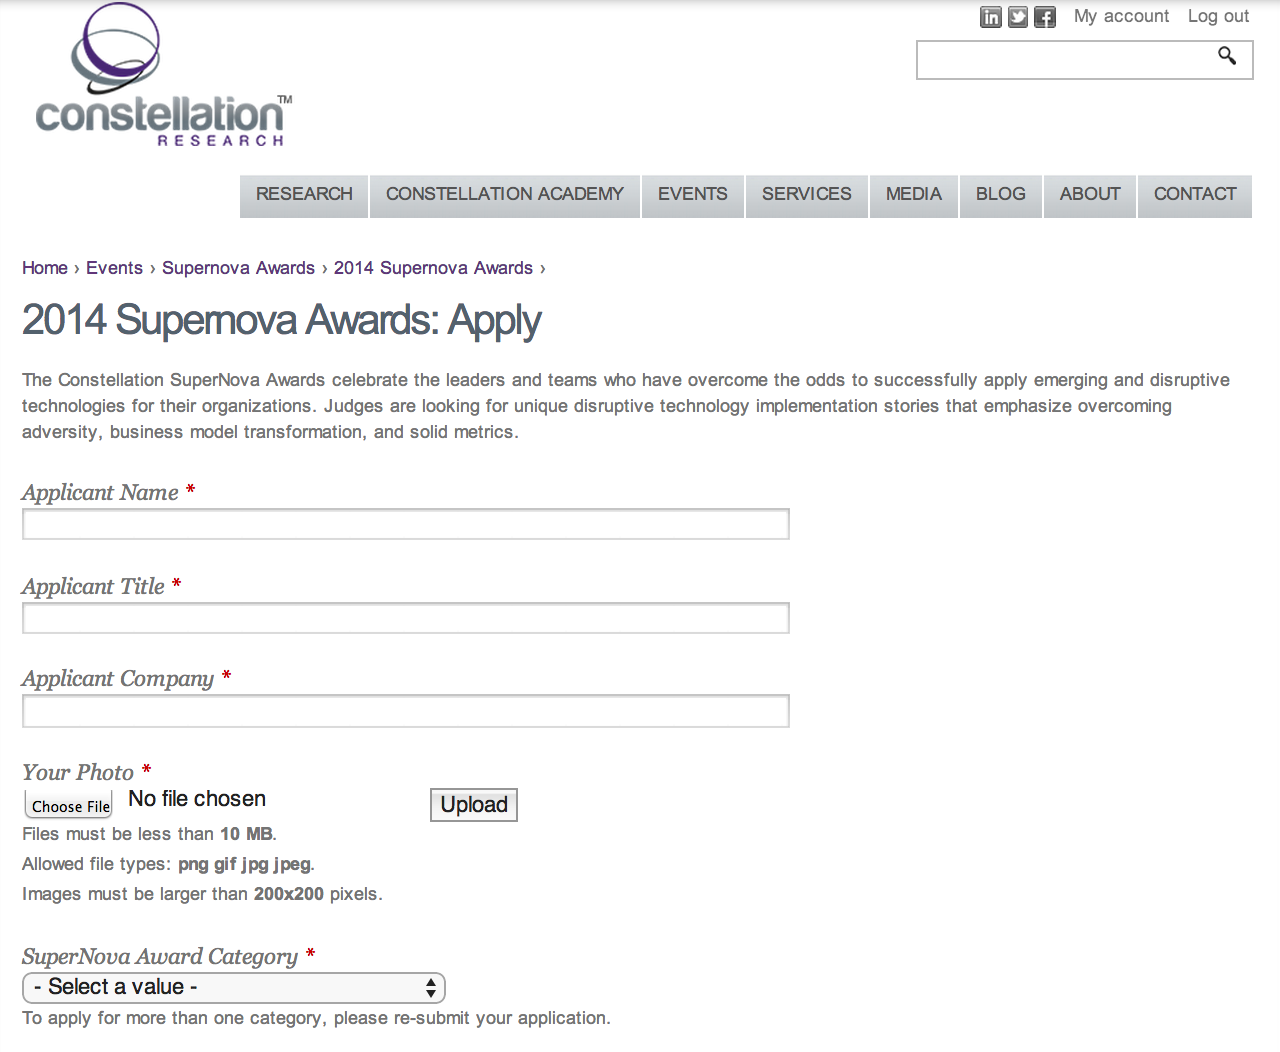 SuperNova Award Application Part I